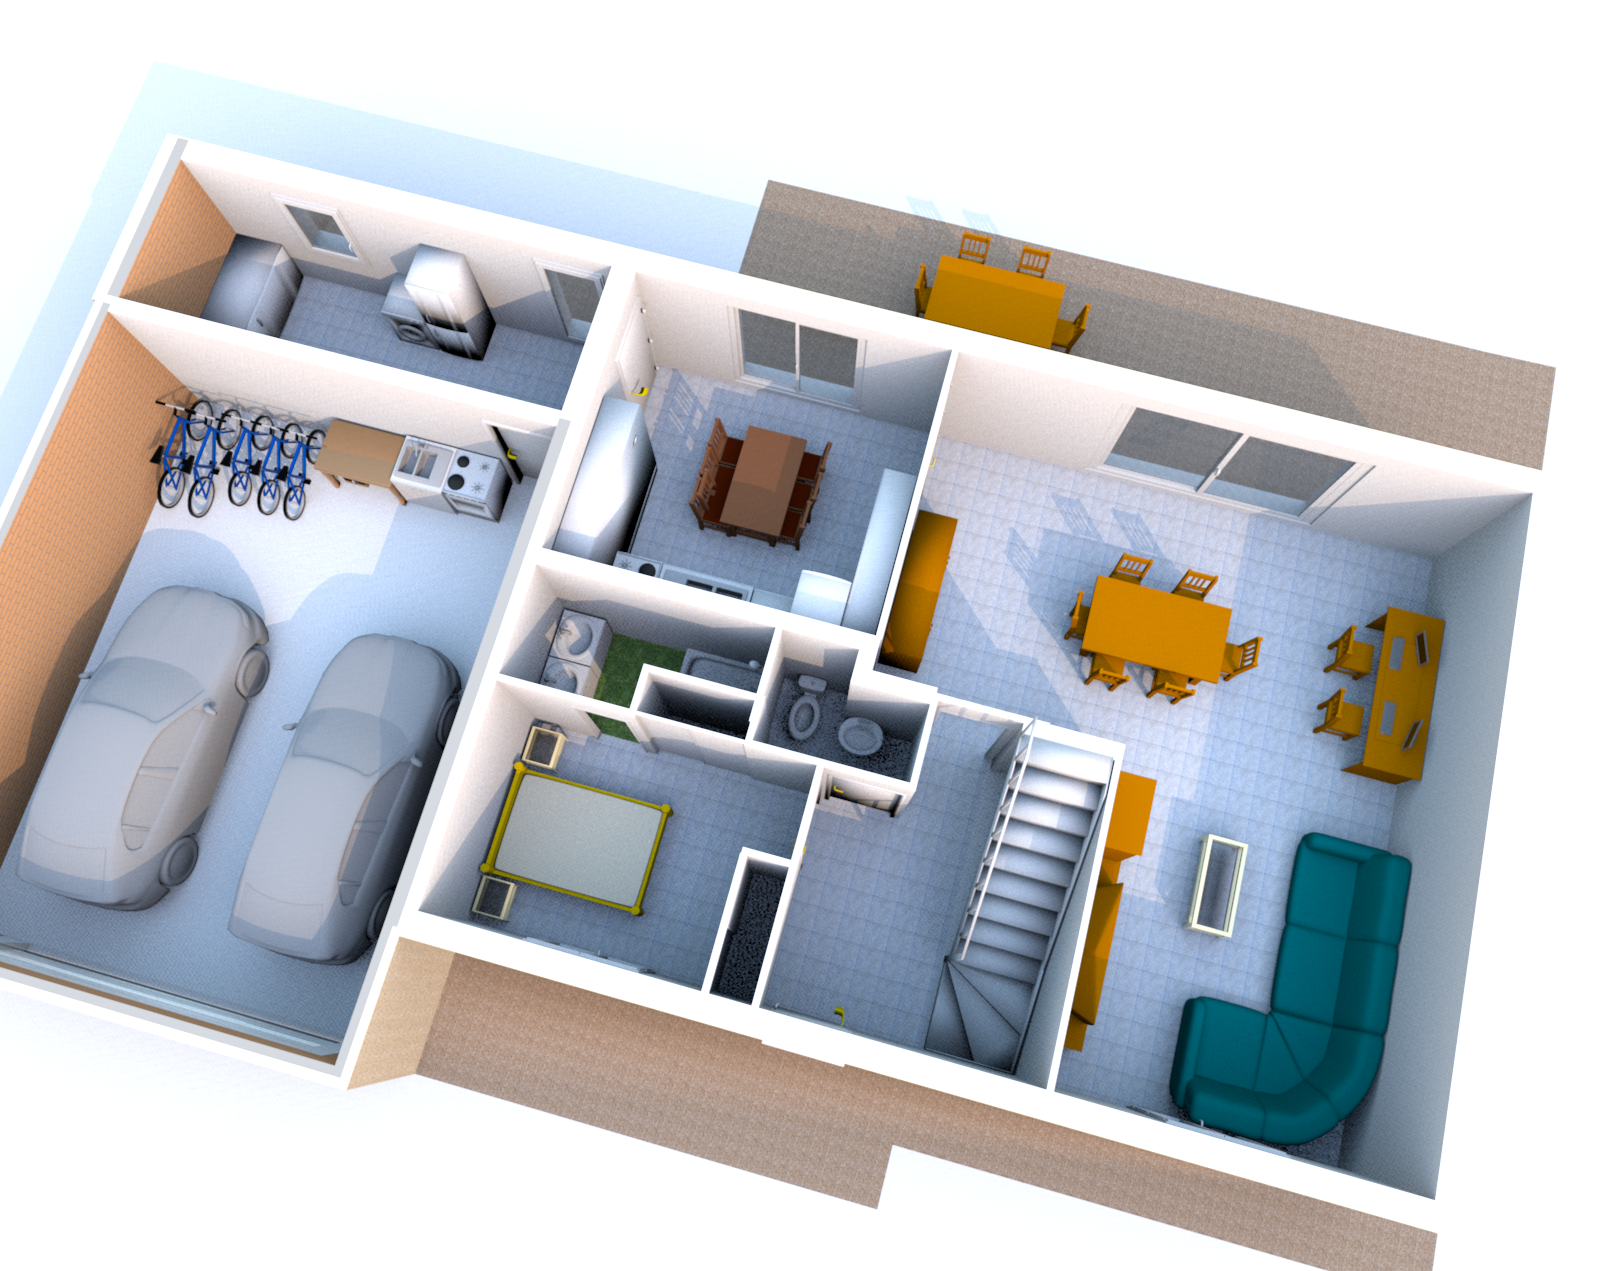 Plan maison 3d endroits visiter pinterest 3d for Plans de maison 3d